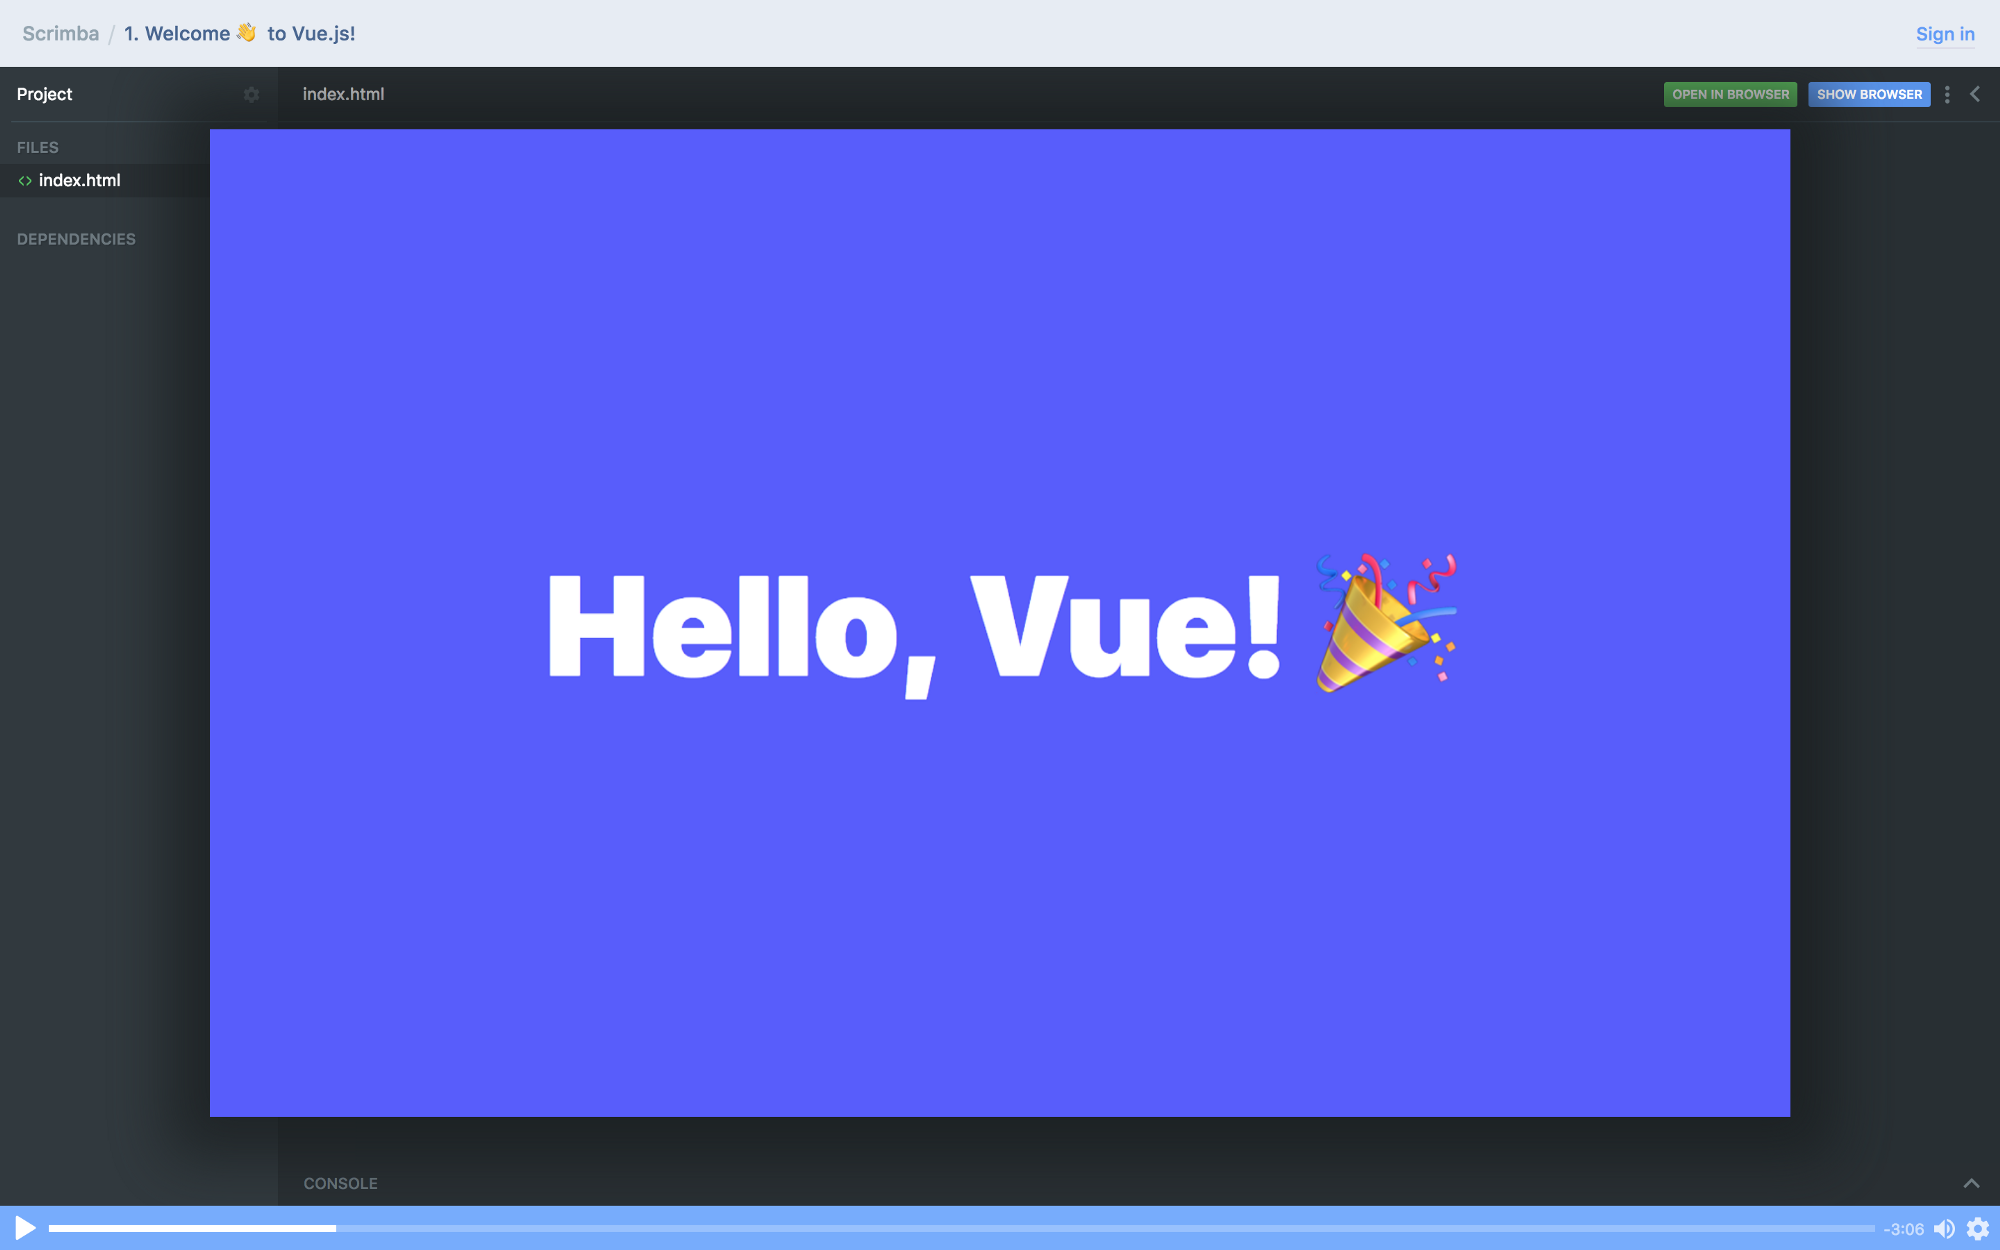 Click to enroll in my free Vue course!